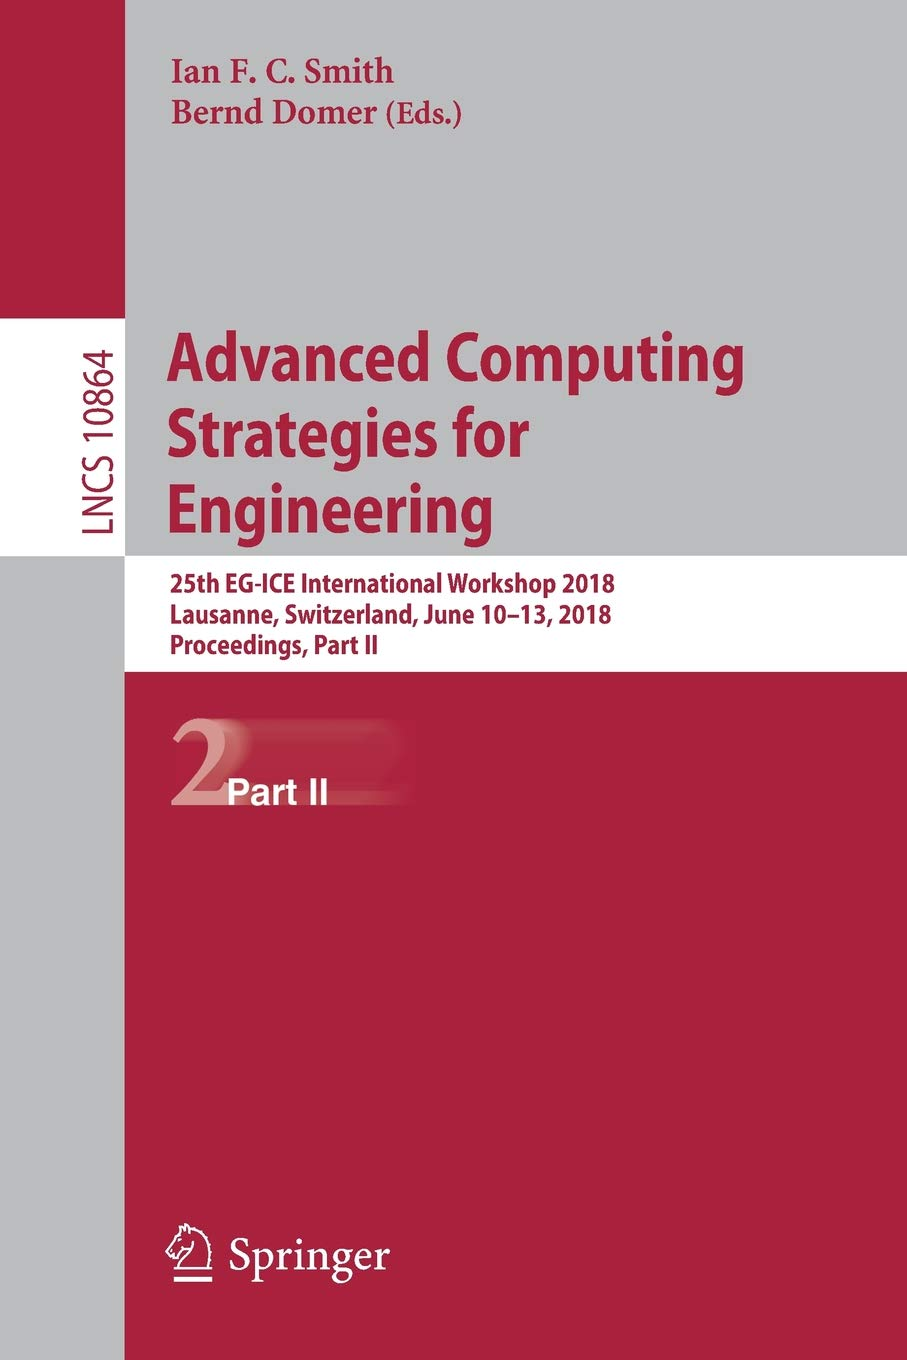 Advanced Computing Strategies for Engineering: 25th